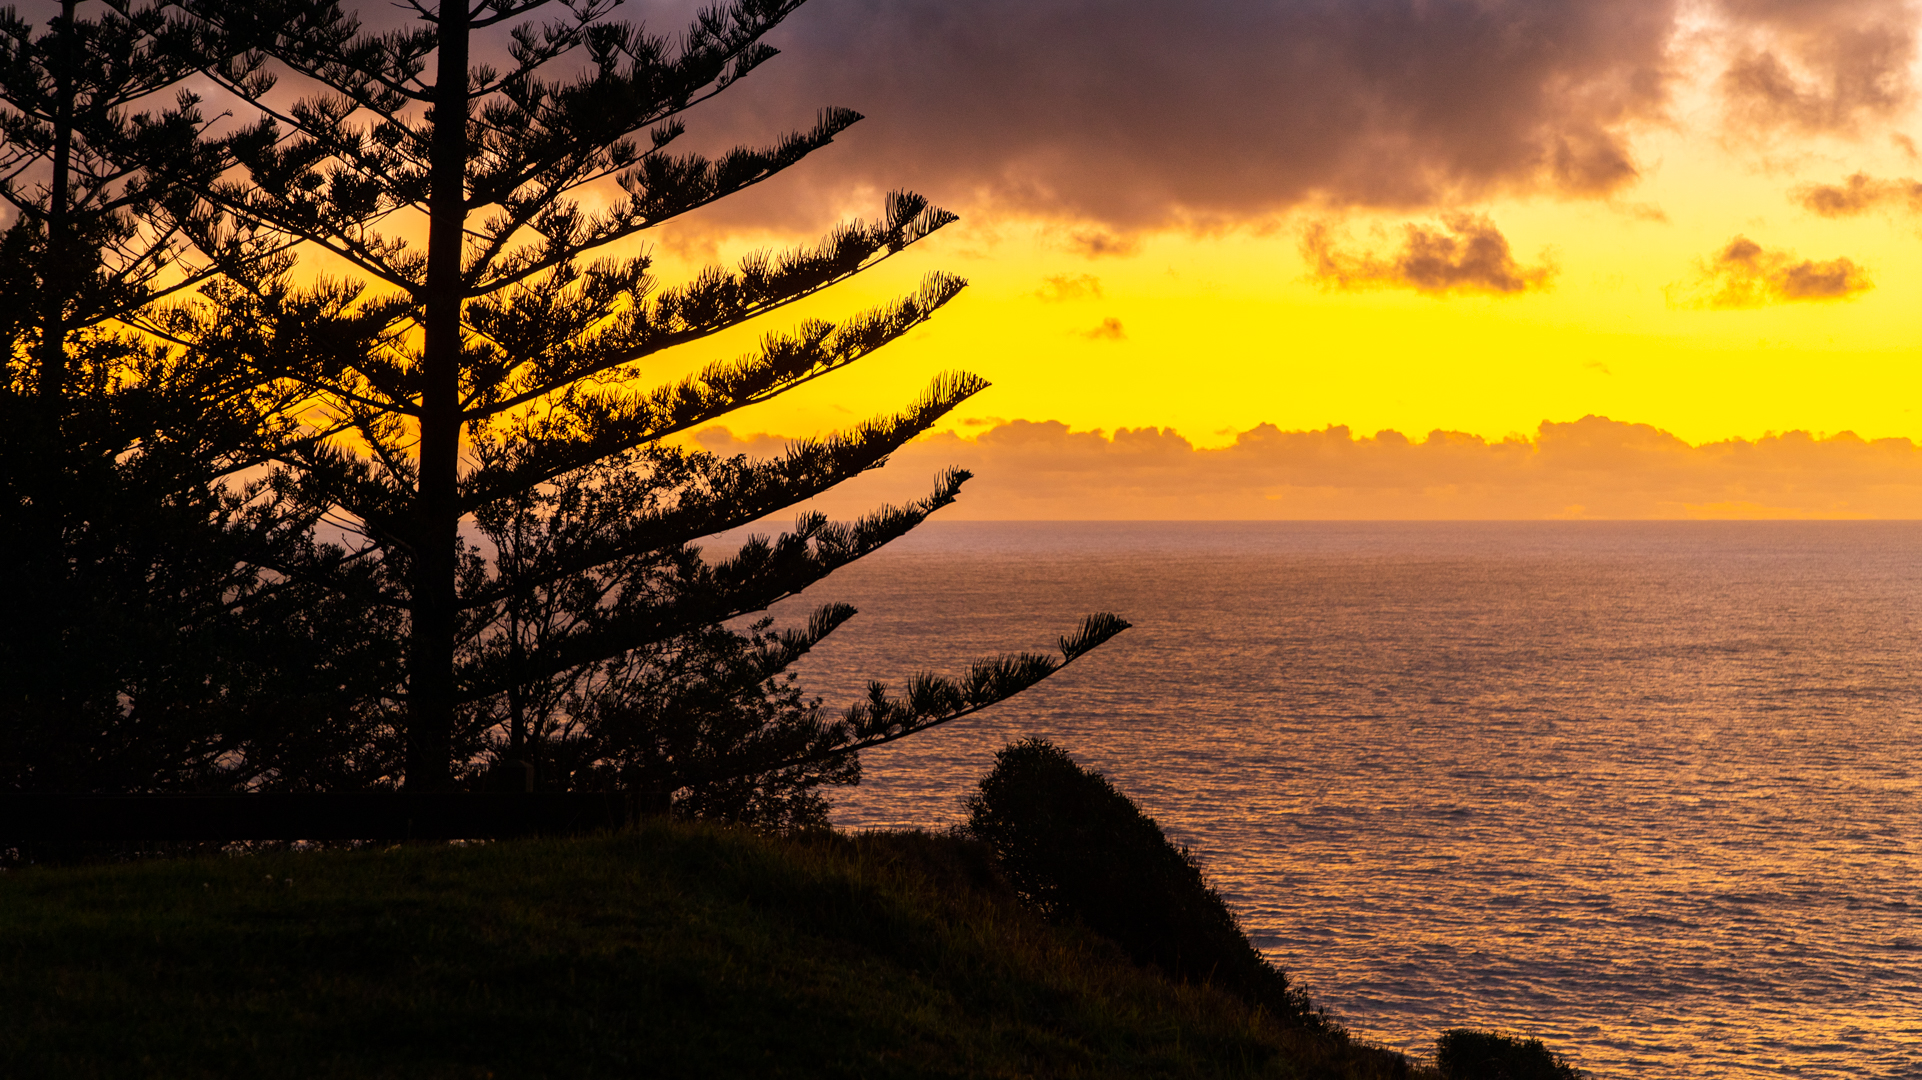 A view of the ocean's horizon at dusk. Behind the silhouette of a Norfolk pine tree, the golden sky is reflected onto the water.